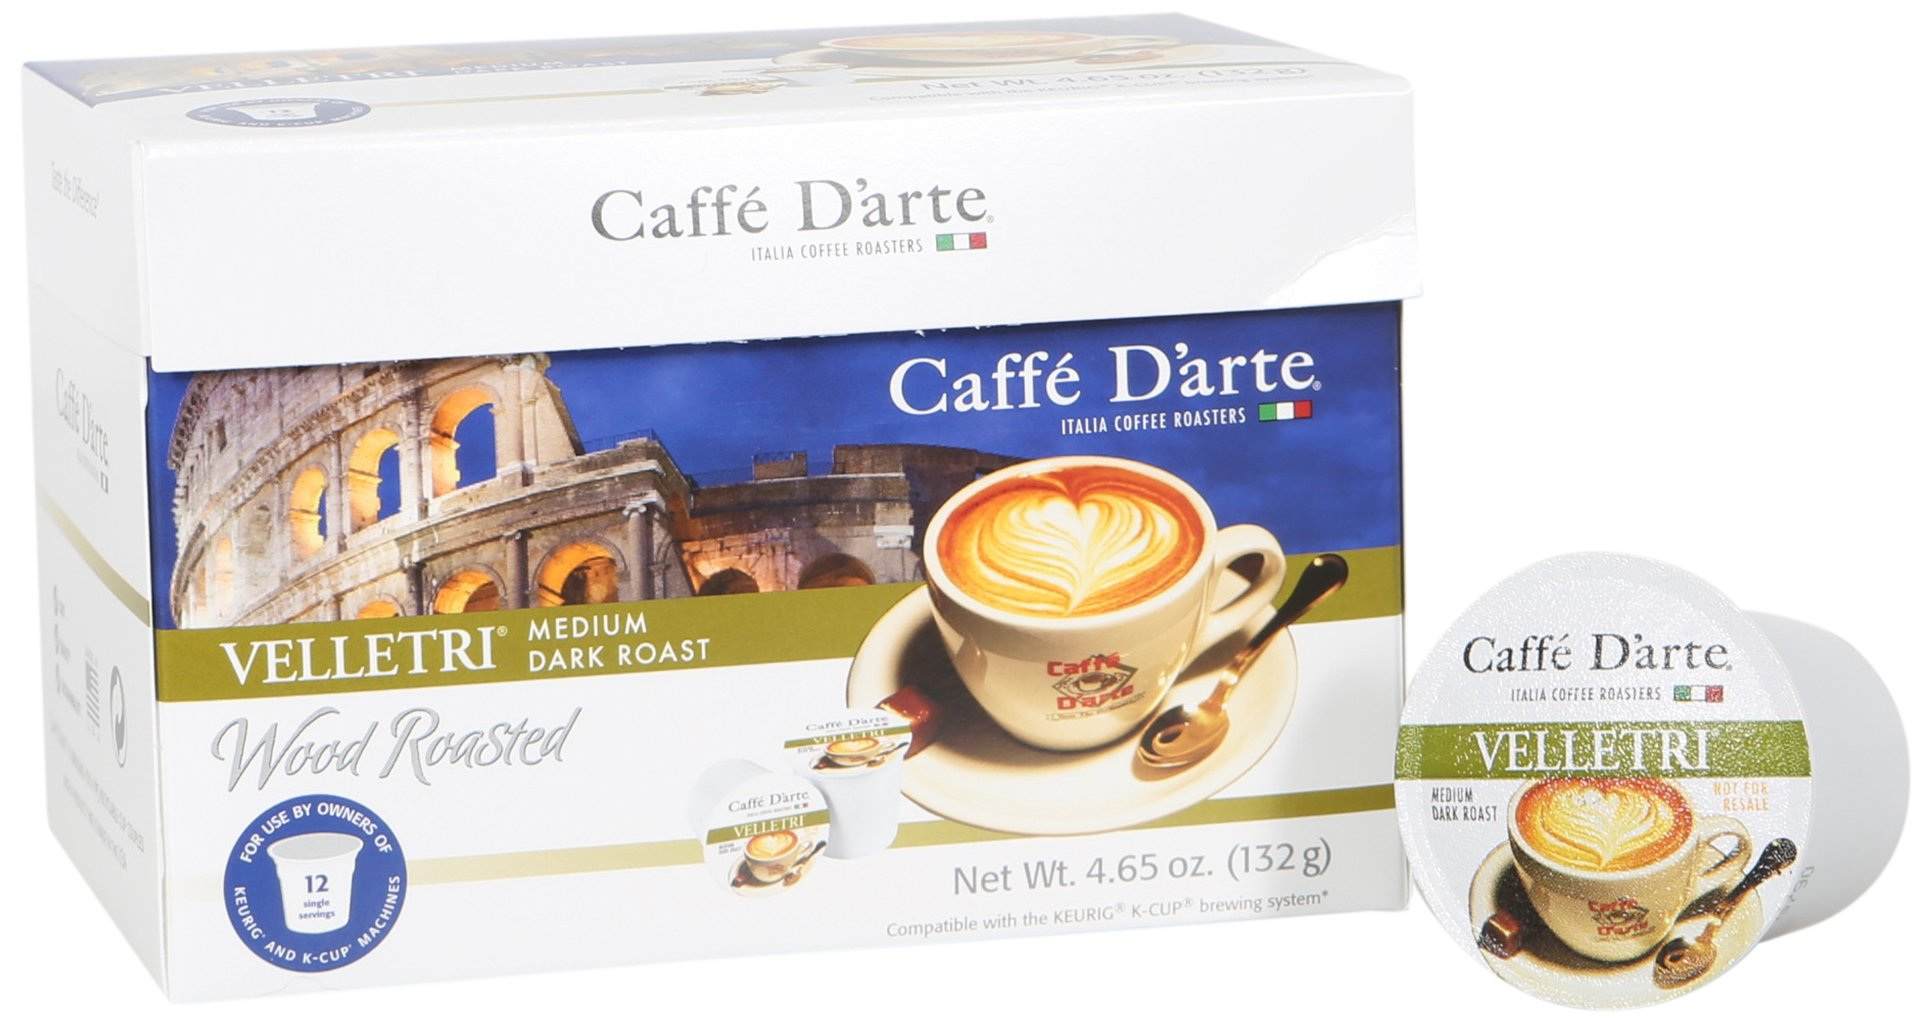 Caffe D'arte Single Serve Coffee, Velletri Blend, 12 count